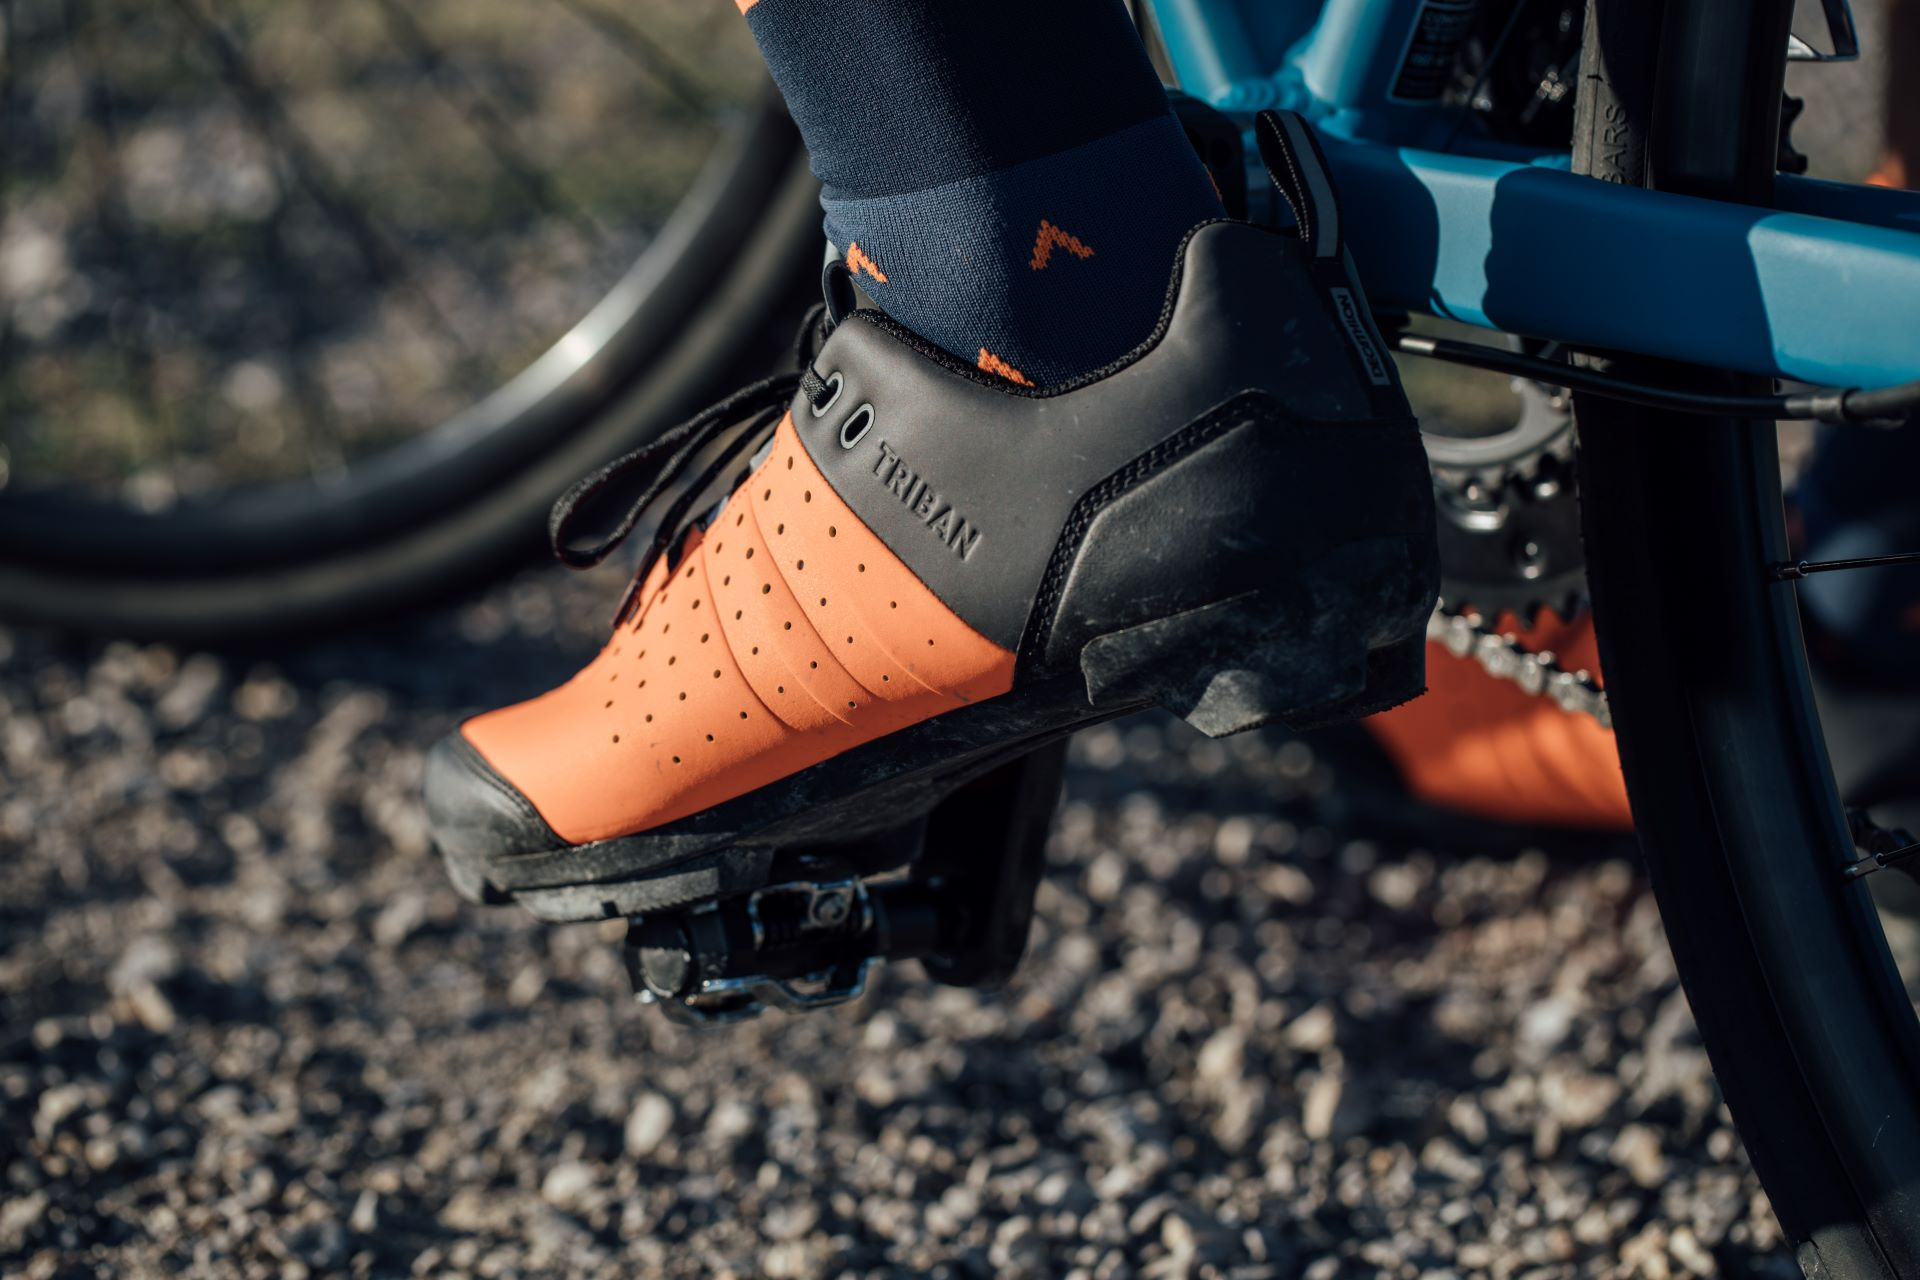 The Road Cycling Shoe: A Design Story